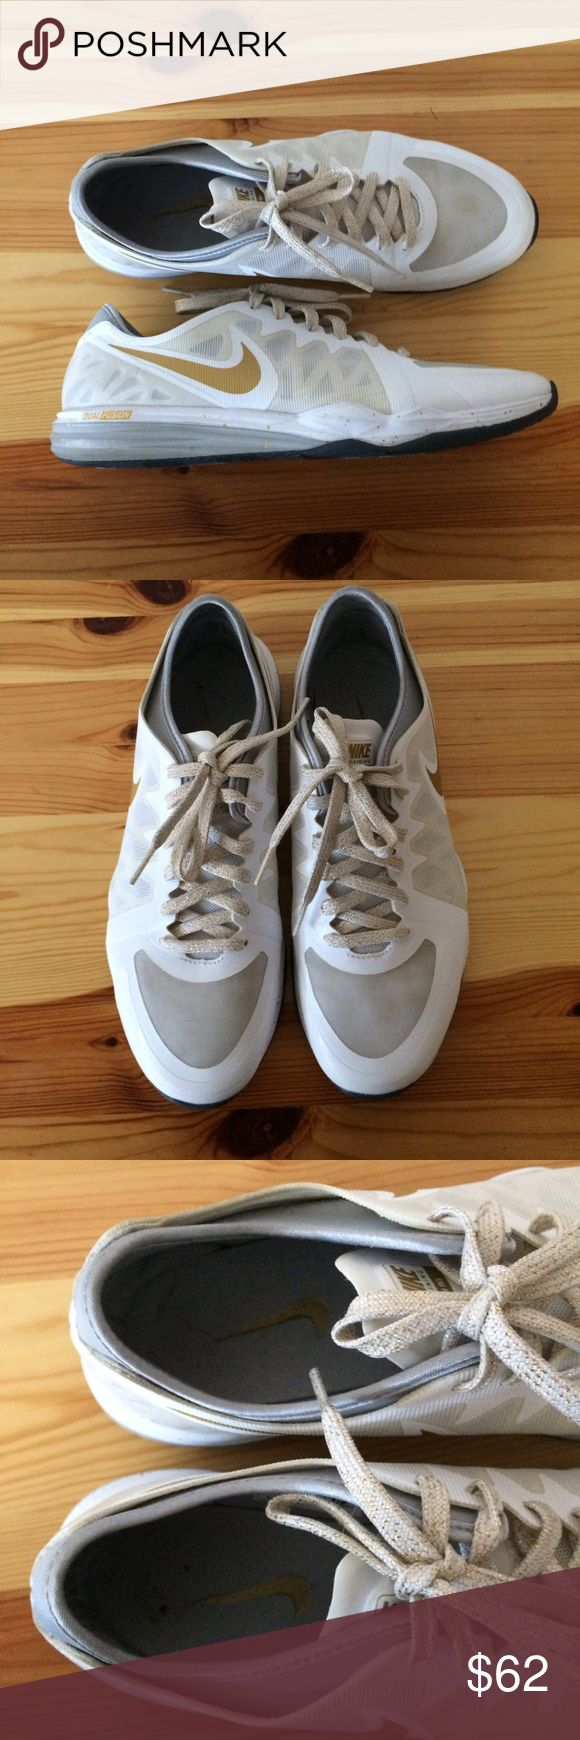 Nike training  shoes Nike sneakers in white and gold, super cute and in very good condition, used 2 or 3 times Nike Shoes